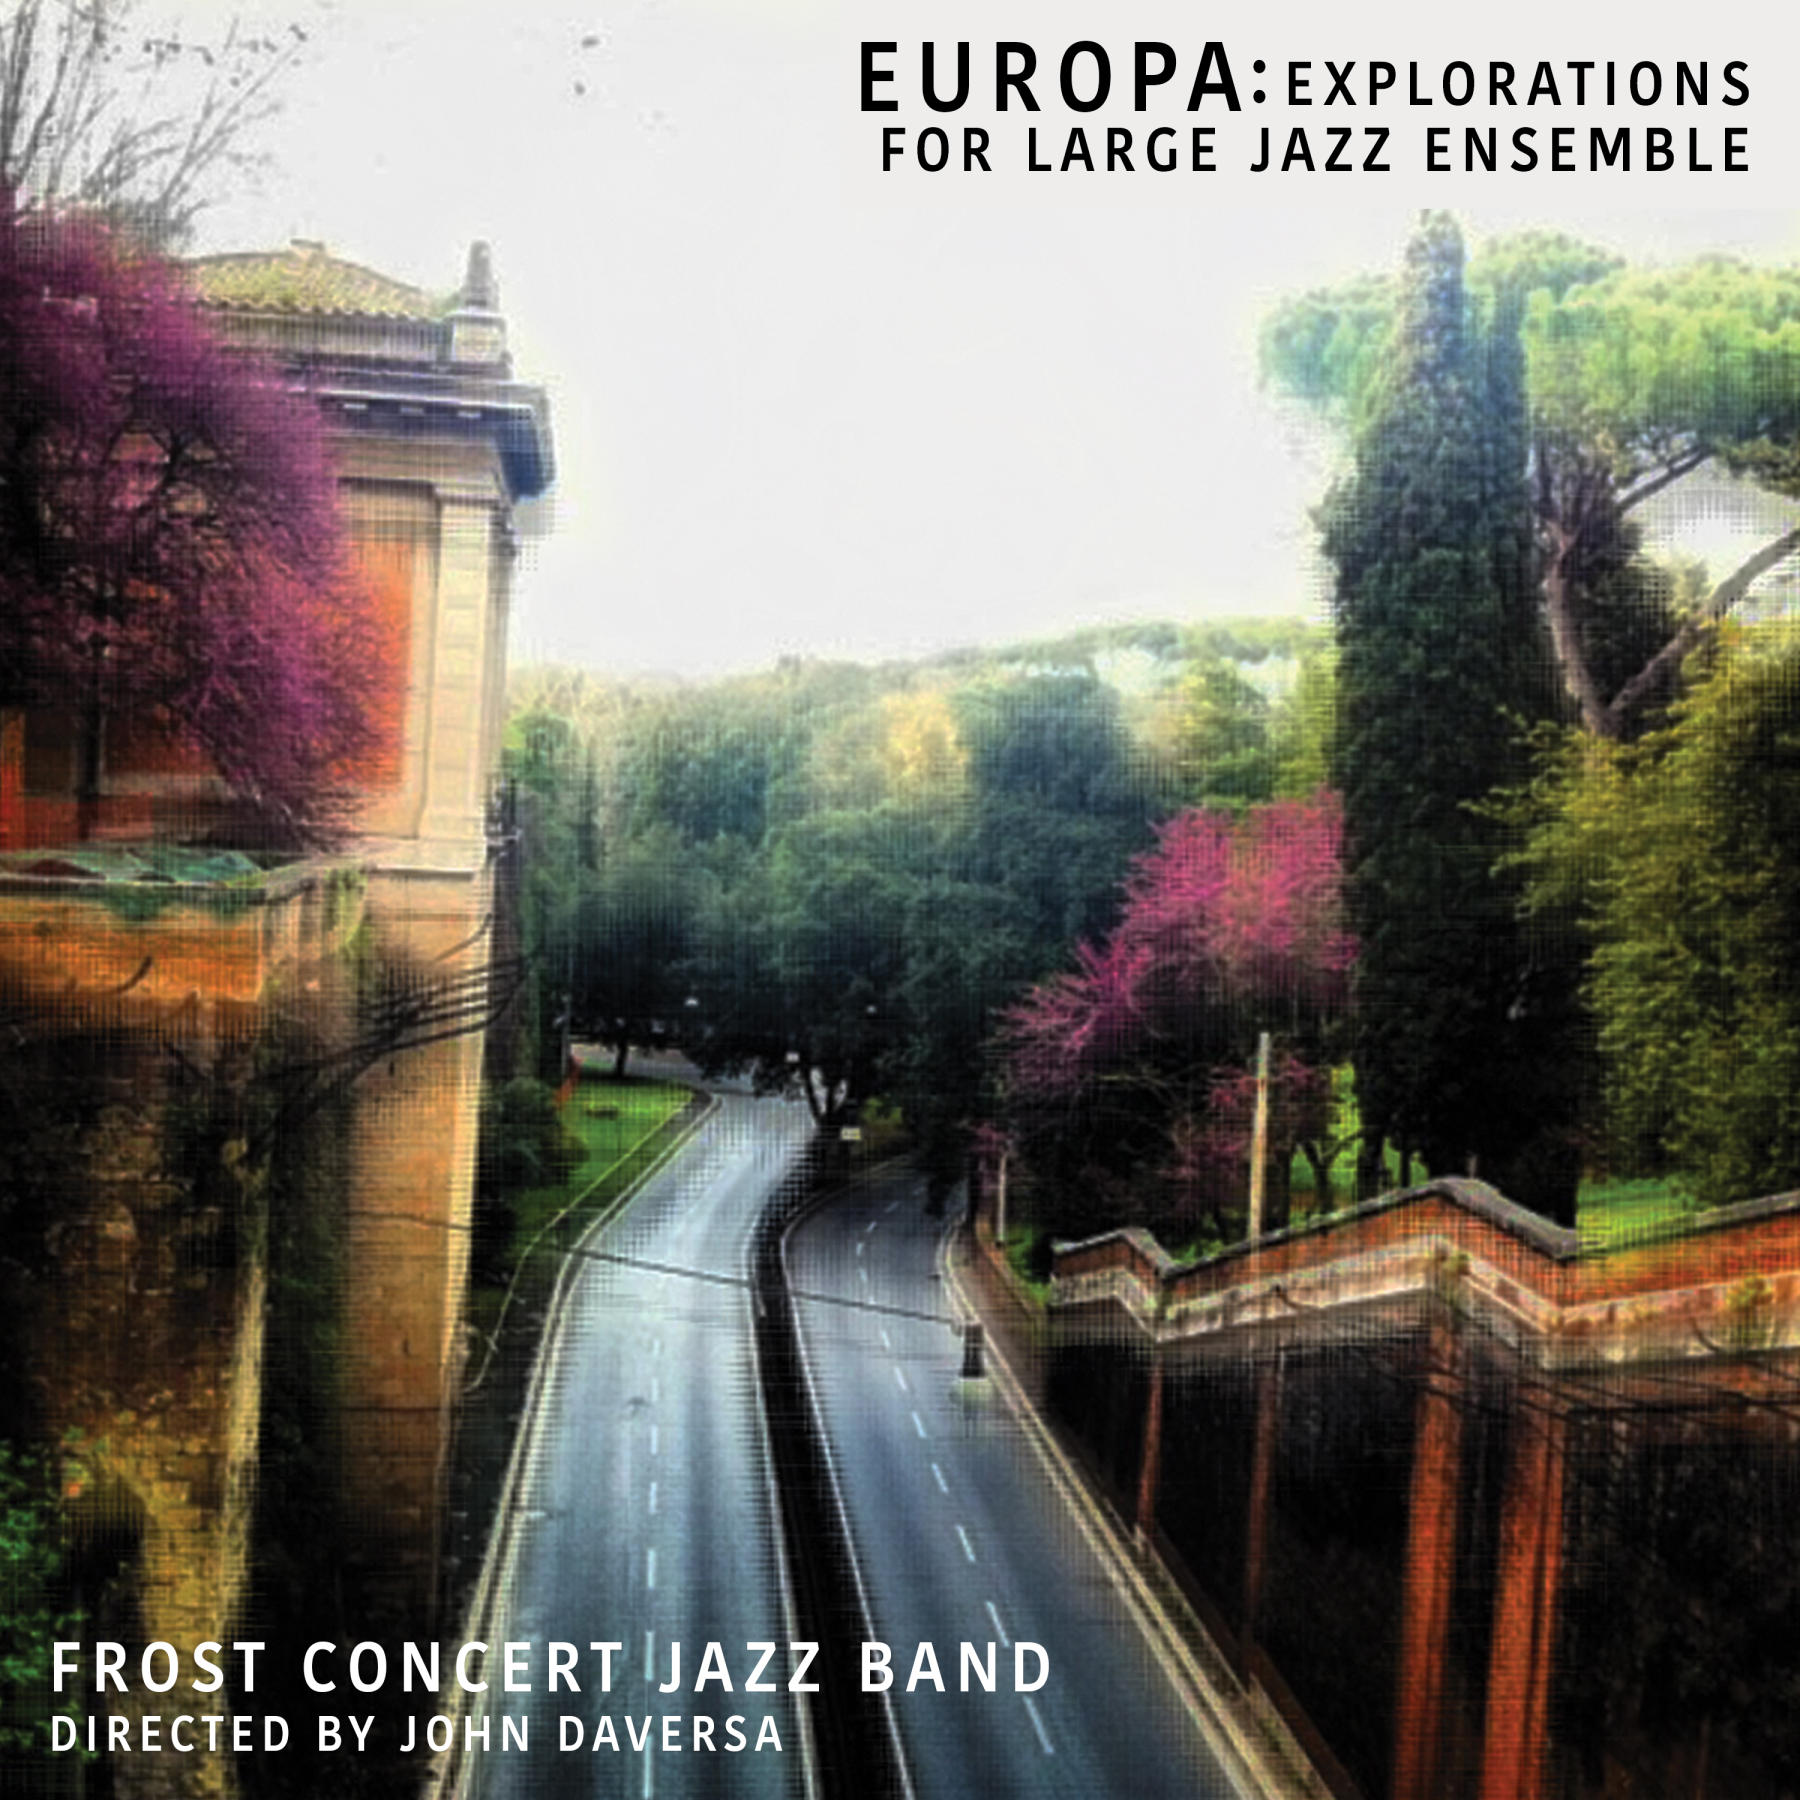 Europa: Explorations for Large Jazz Ensemble Download Participant